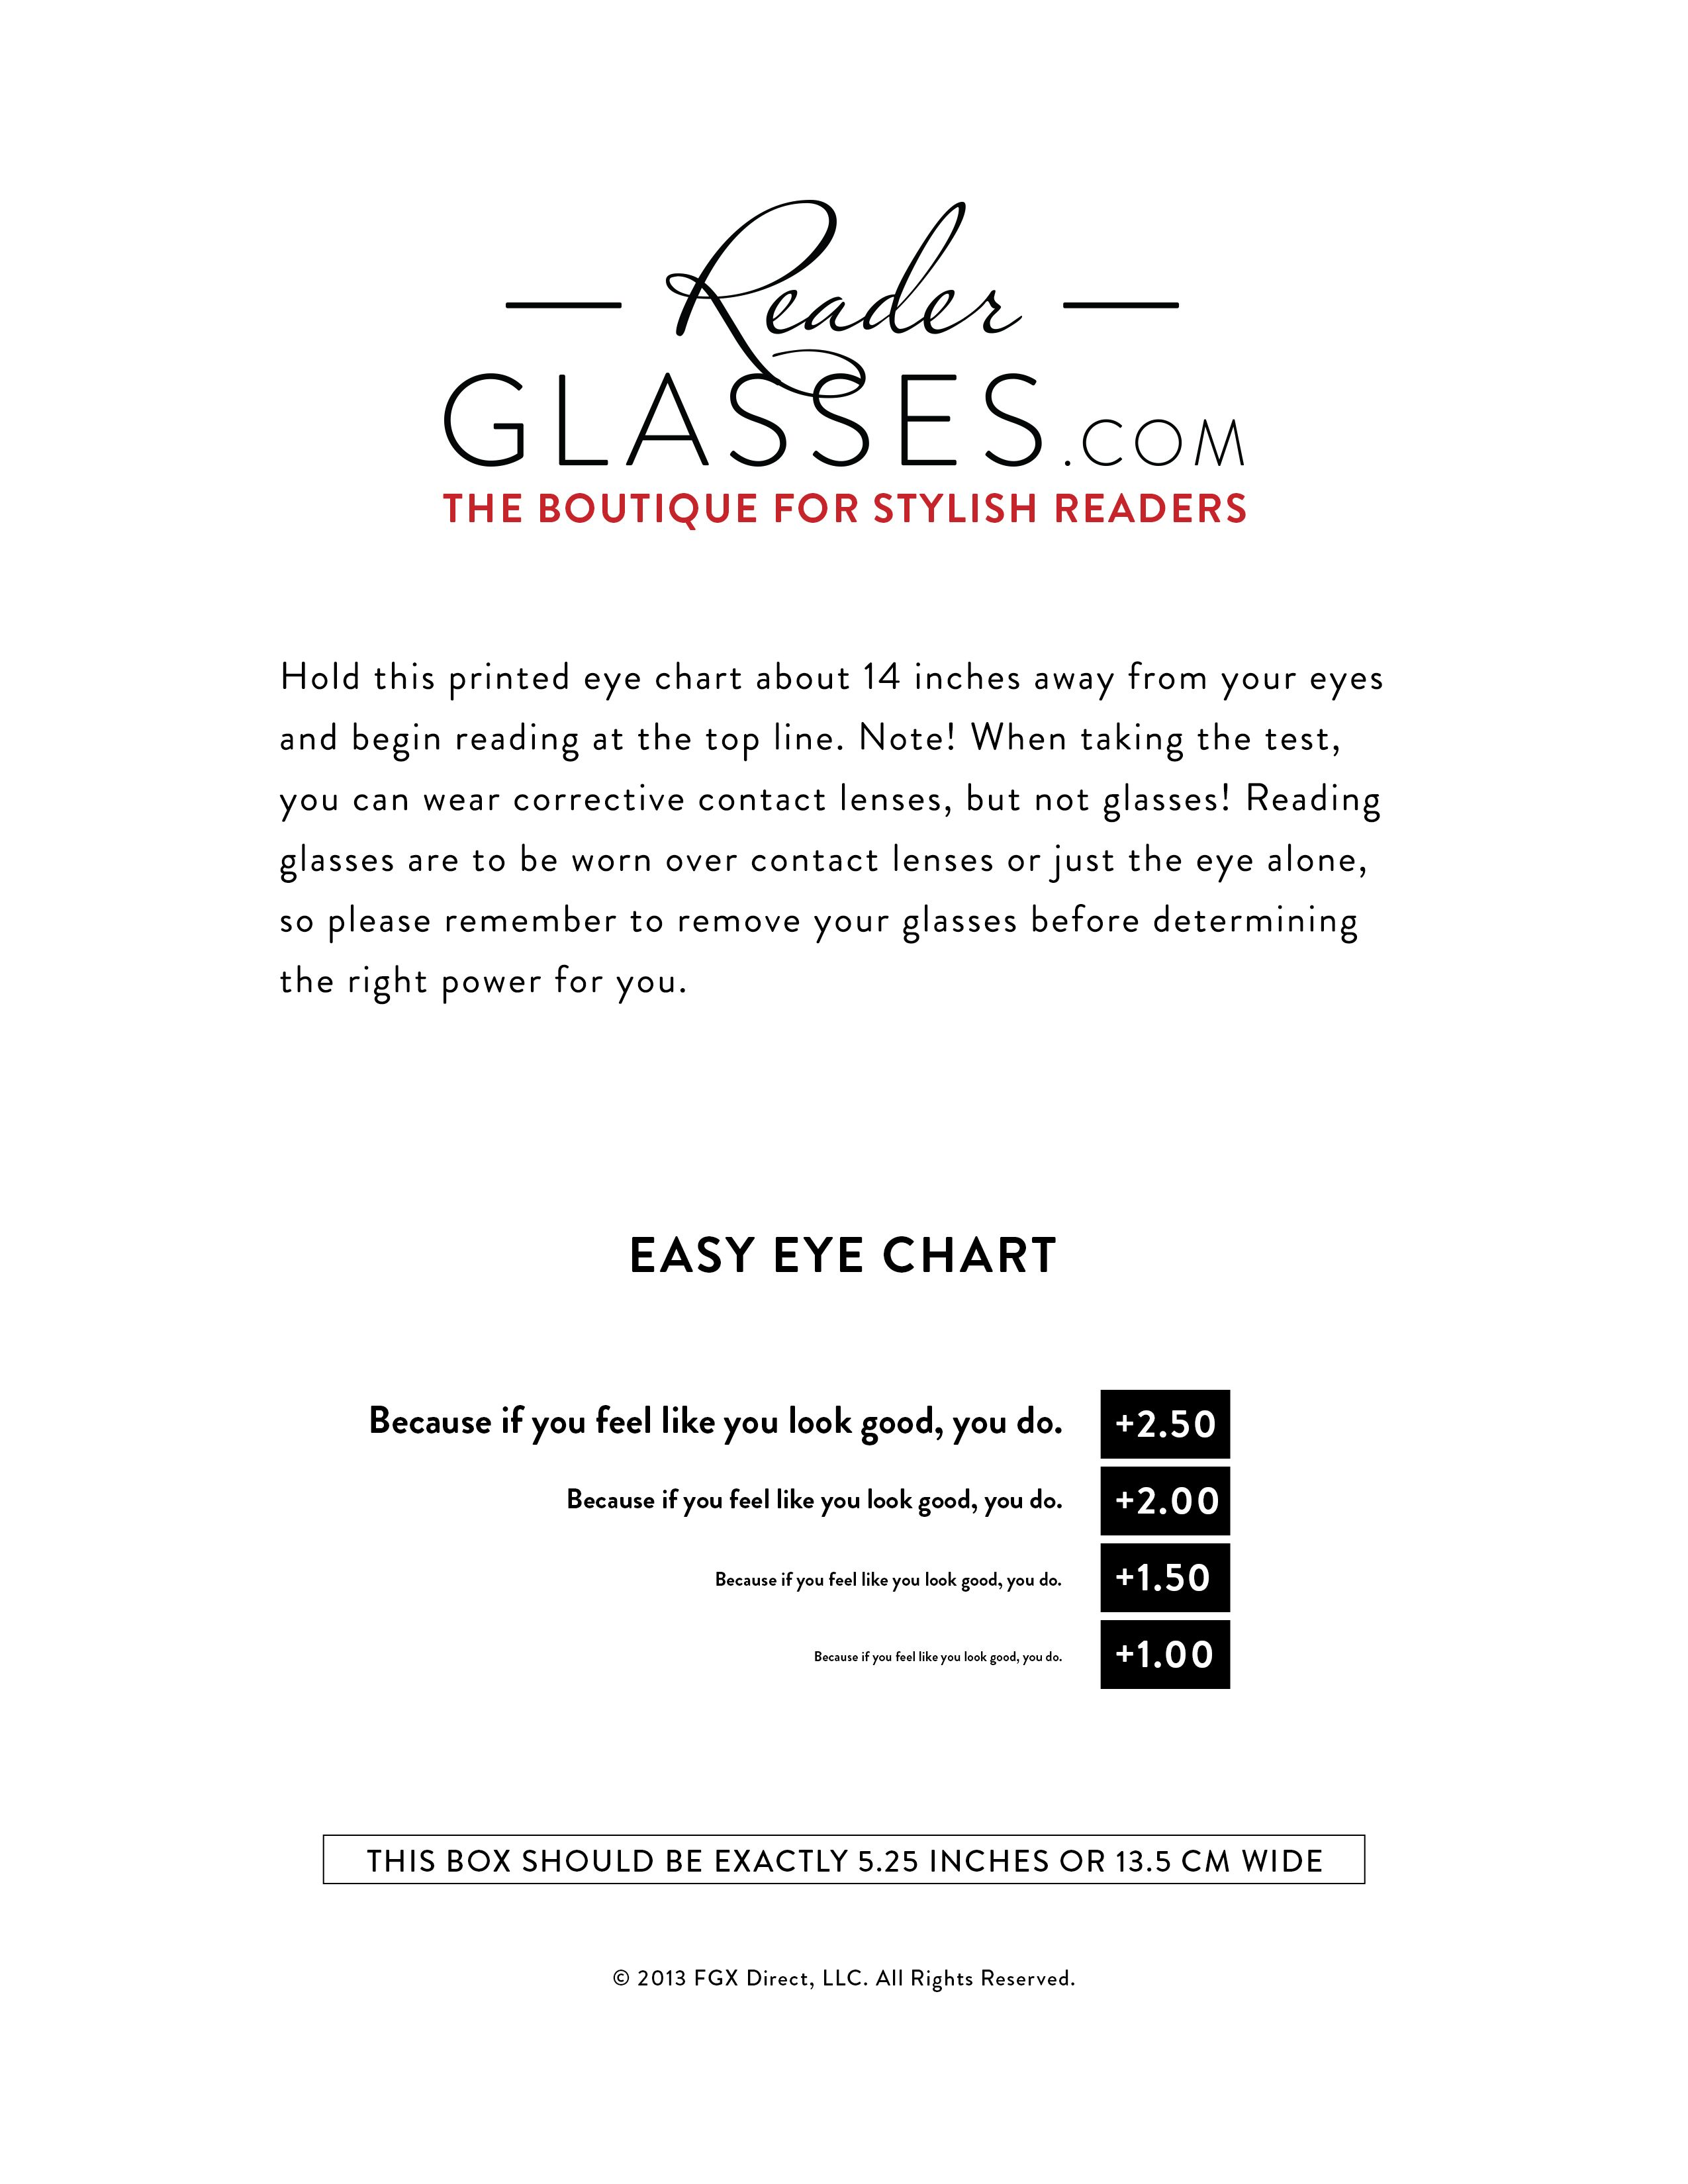 Find Your Strength Find Your Strengths Eye Chart Beginning Reading